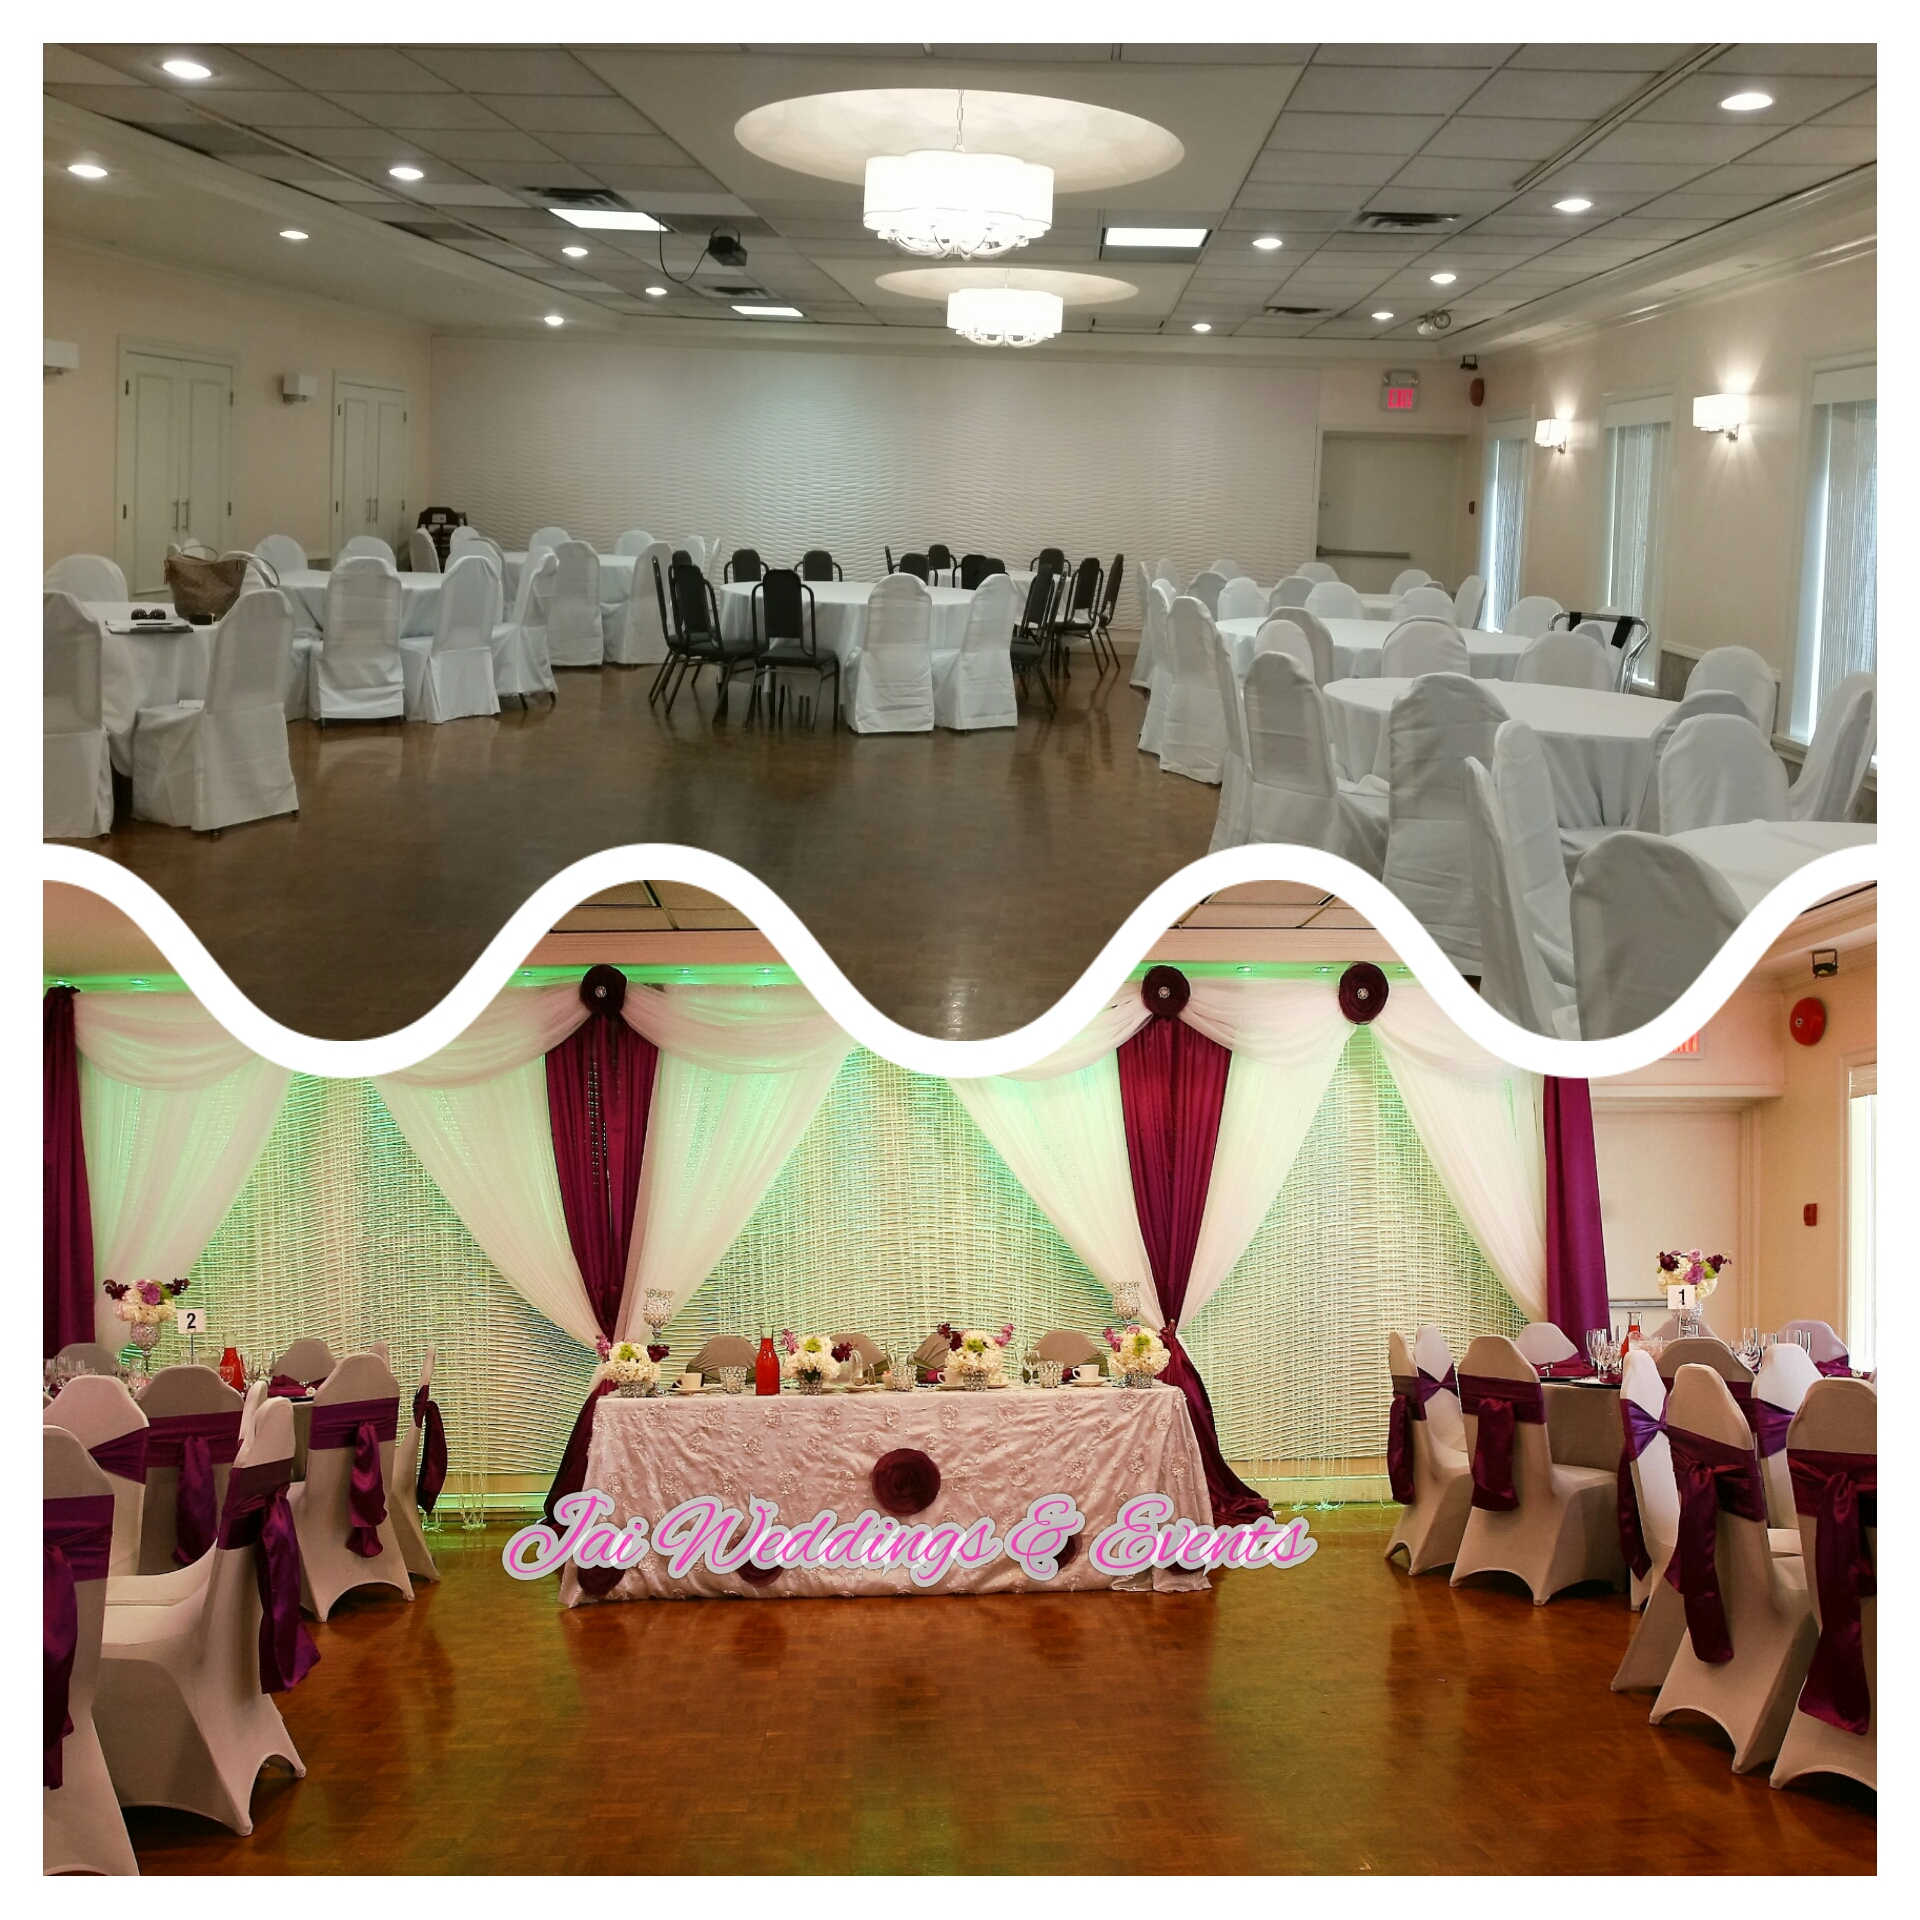 purple and white wedding backdrop